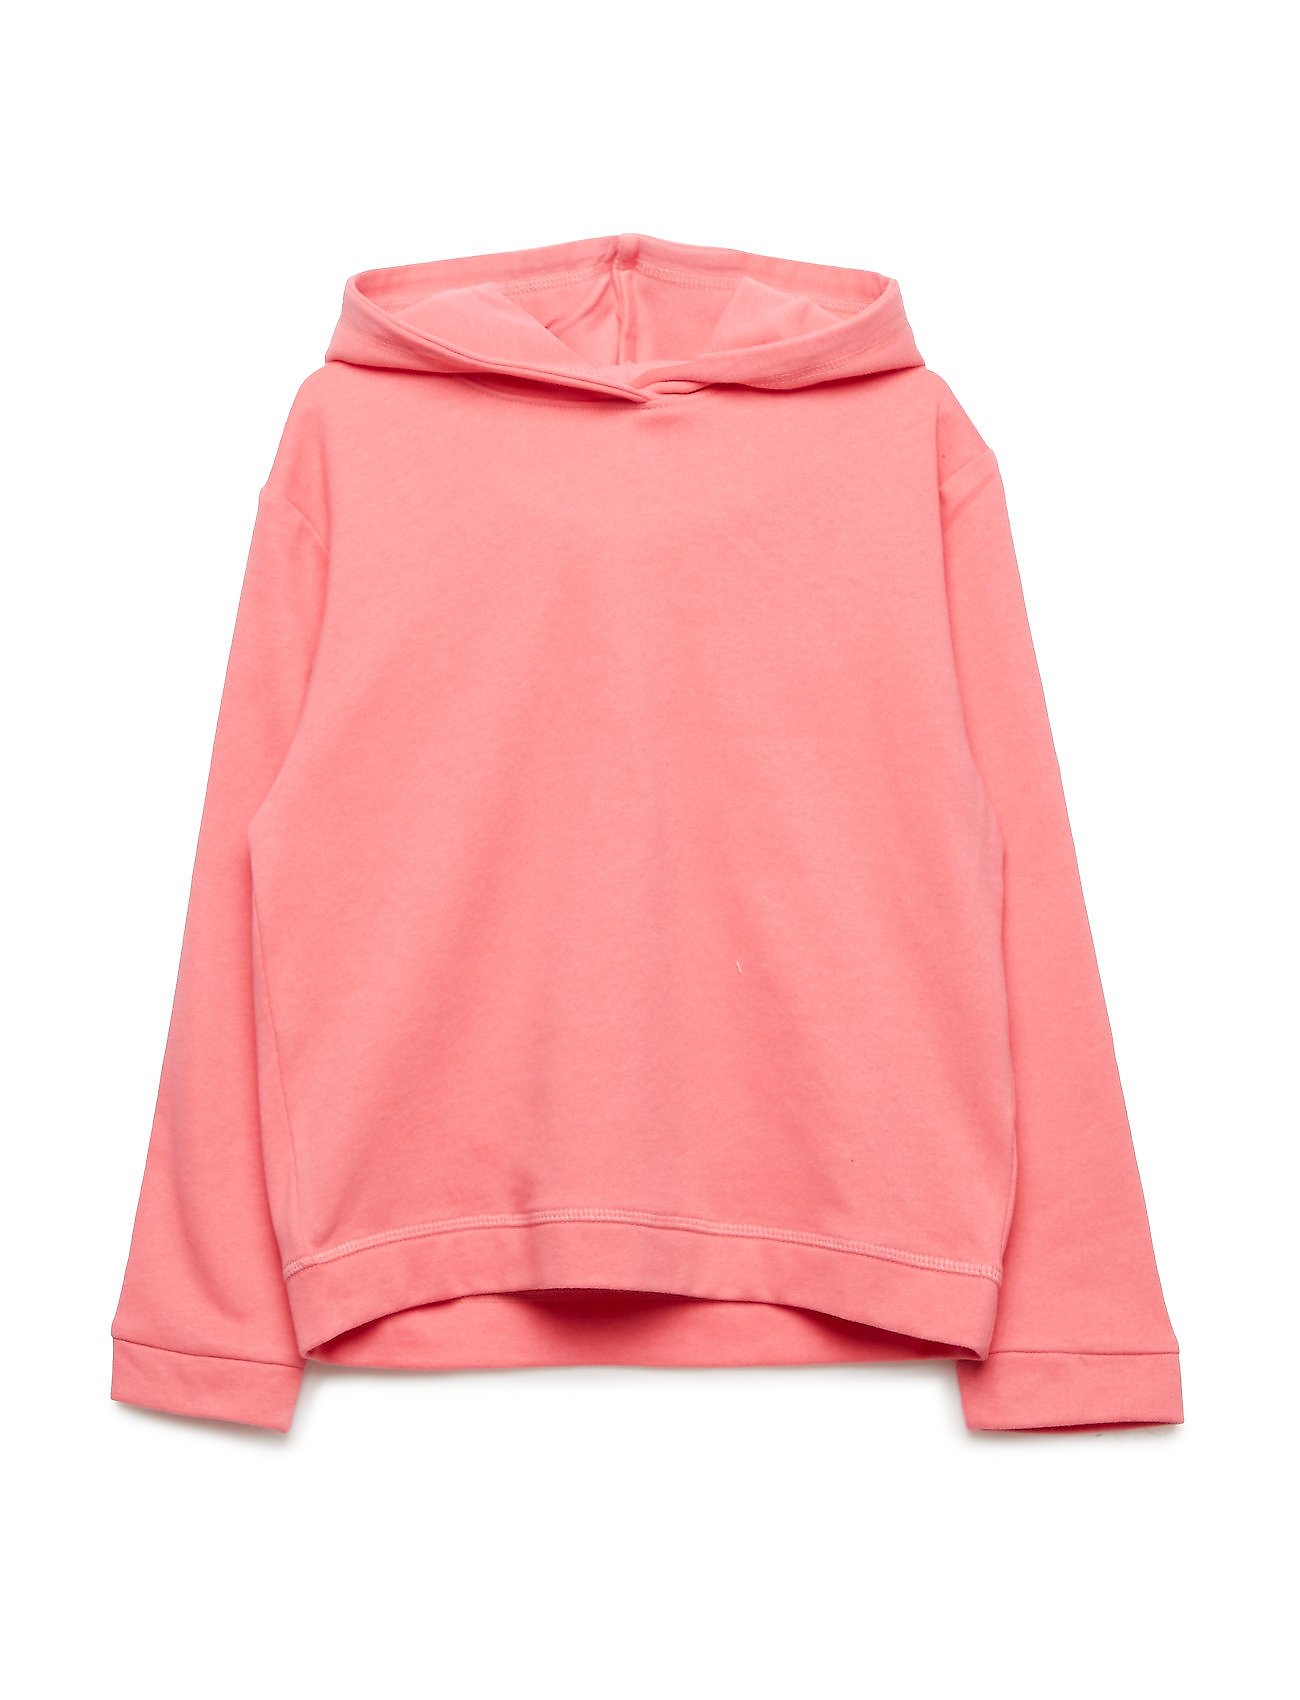 Konsound L/S Hood Ok Girls  Swt - Kids Only